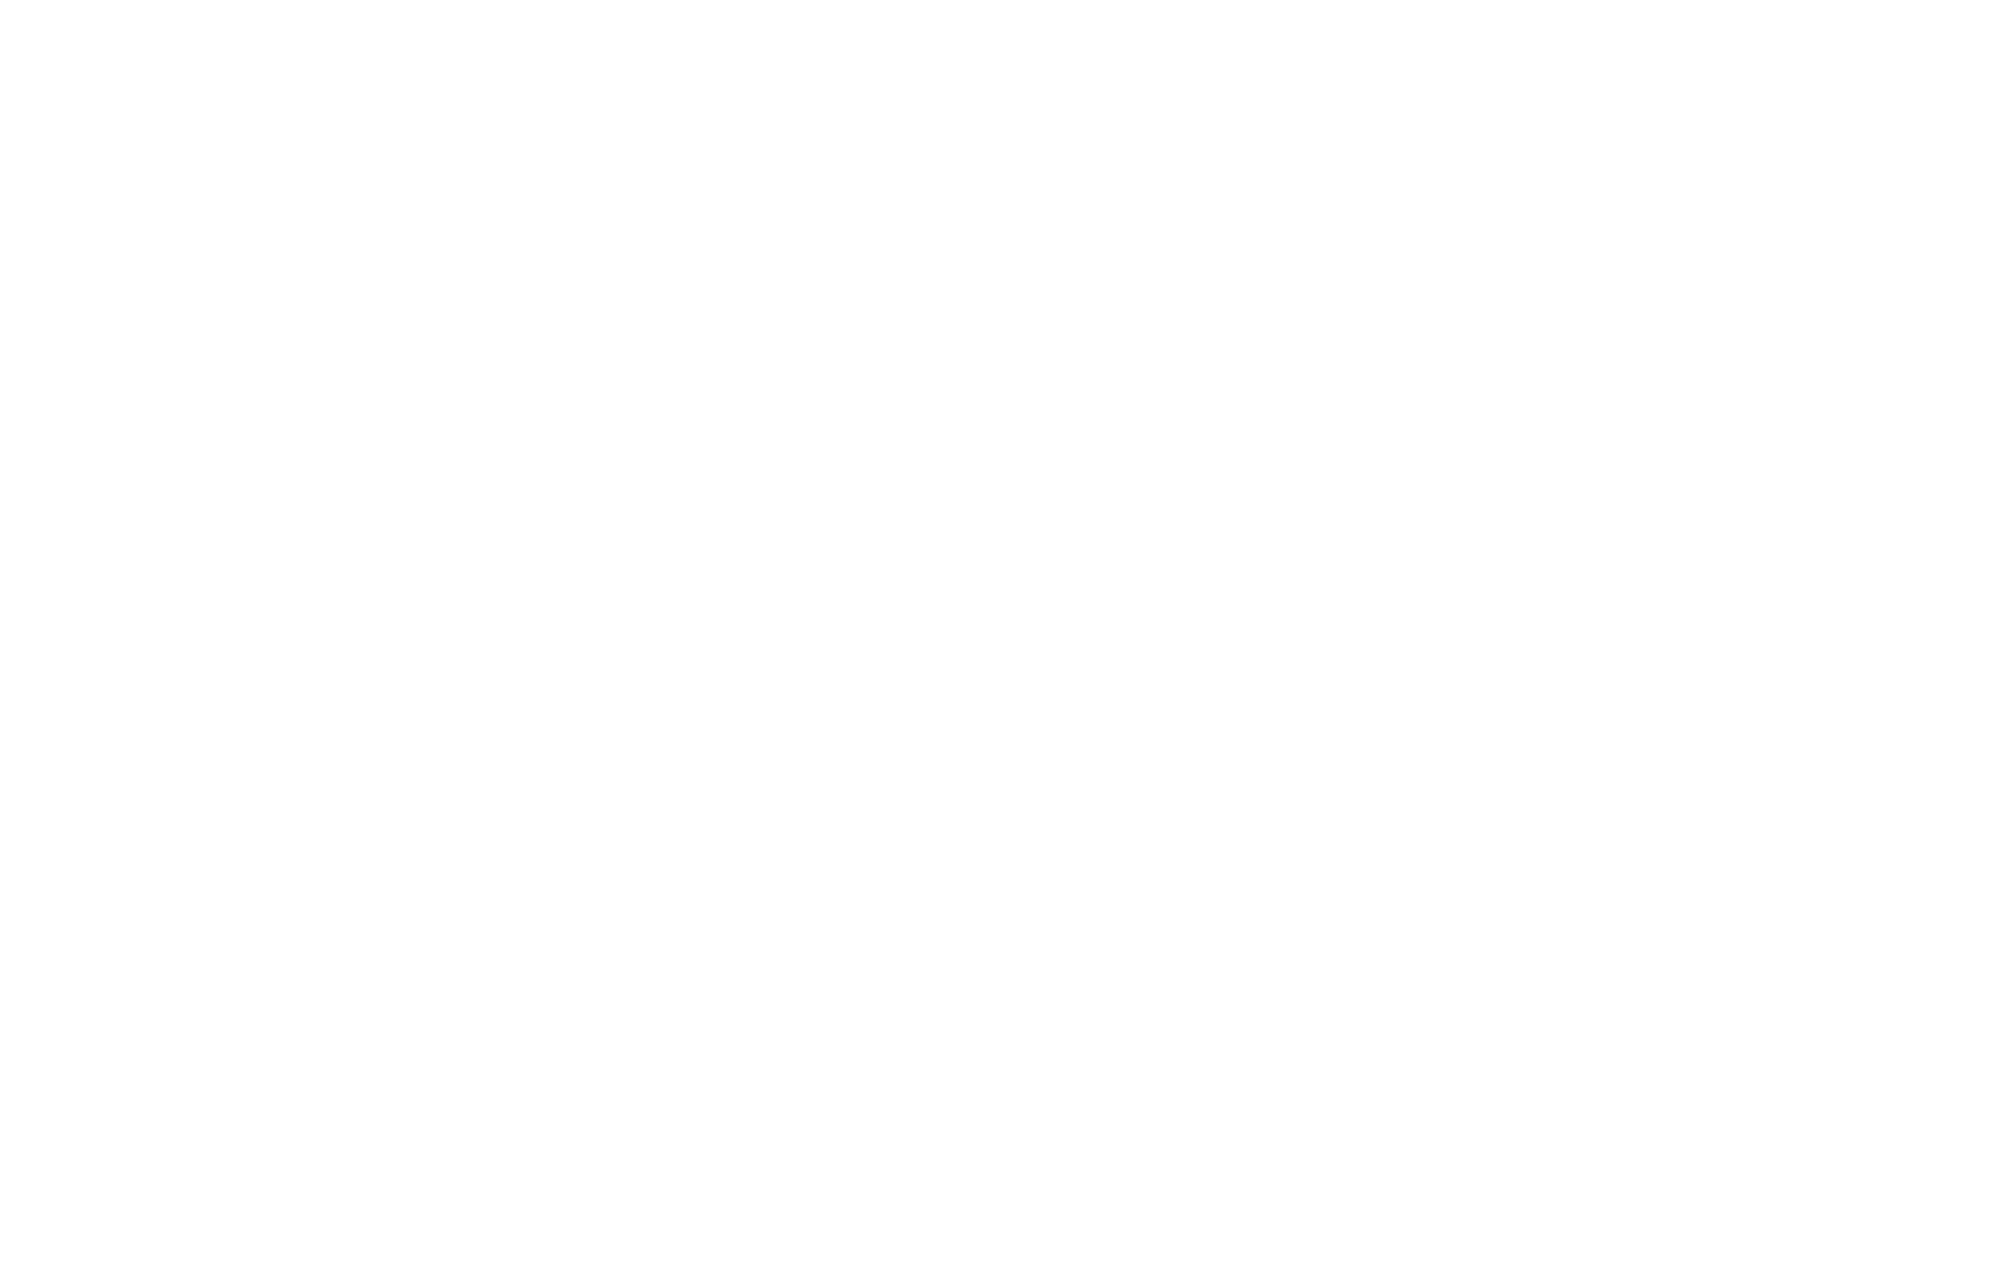 Cows clipart waste. Animal agriculture pigs produce